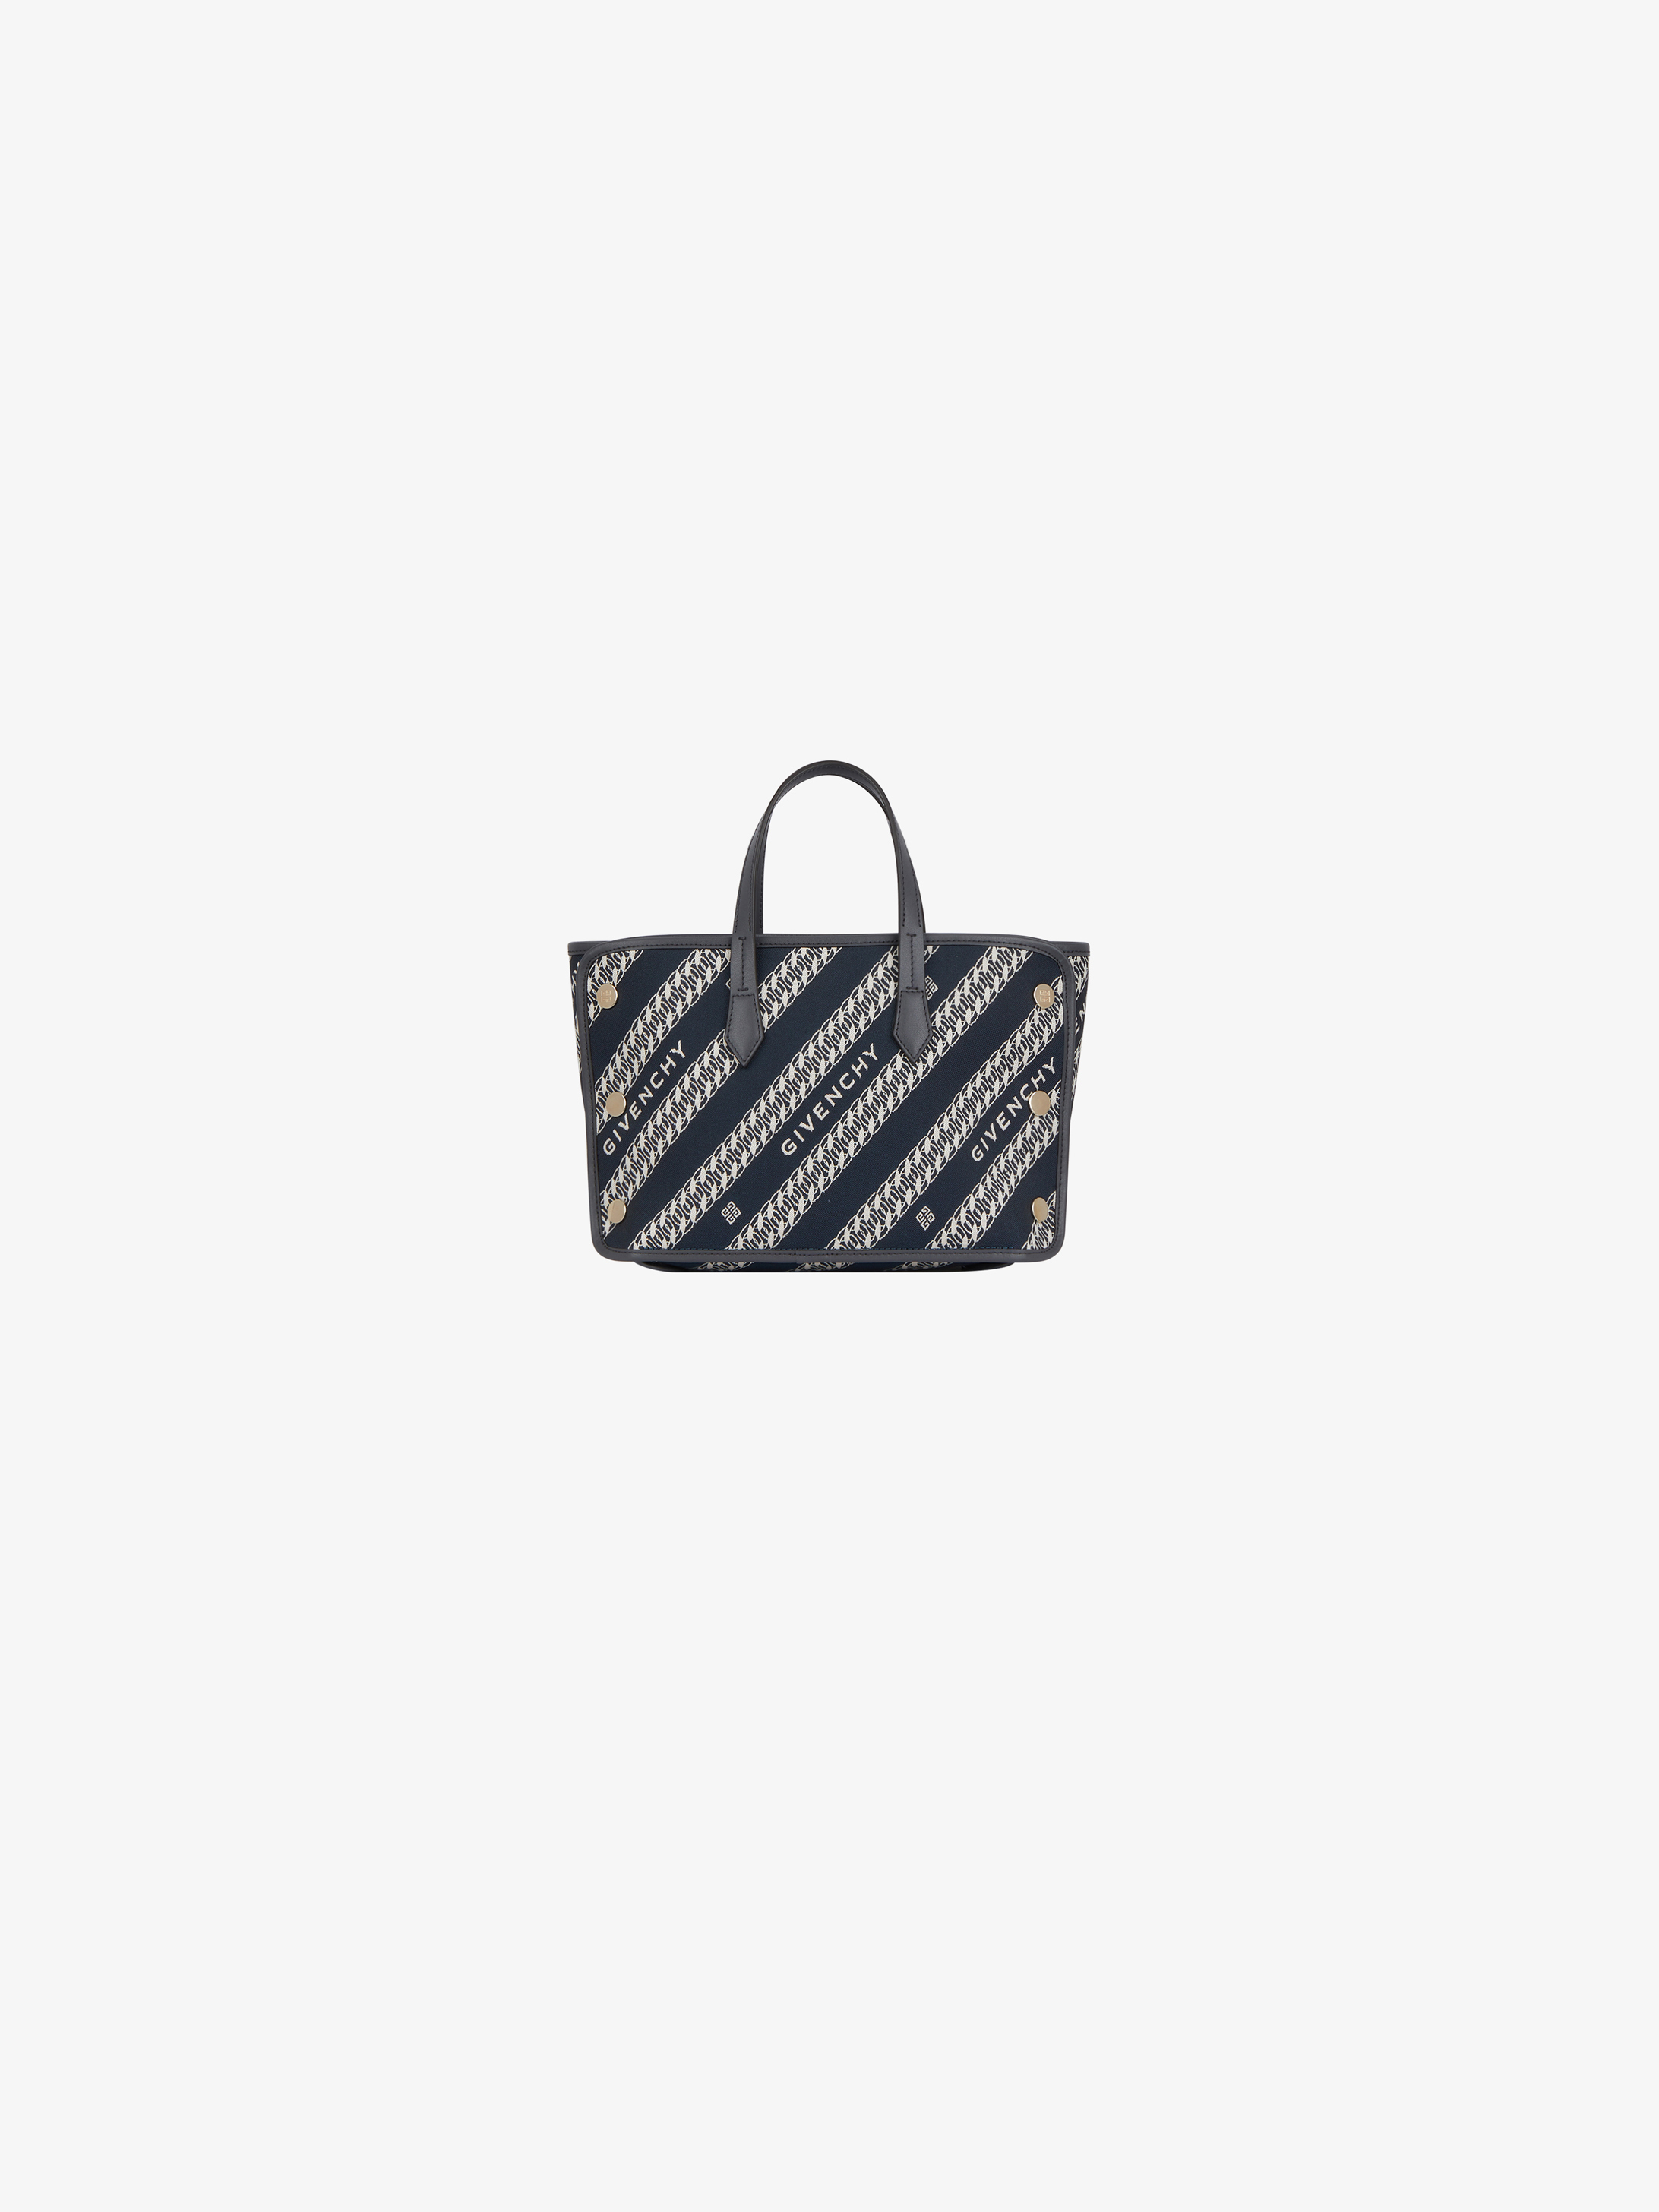 Mini BOND shopper in GIVENCHYcanvas chain jacquard